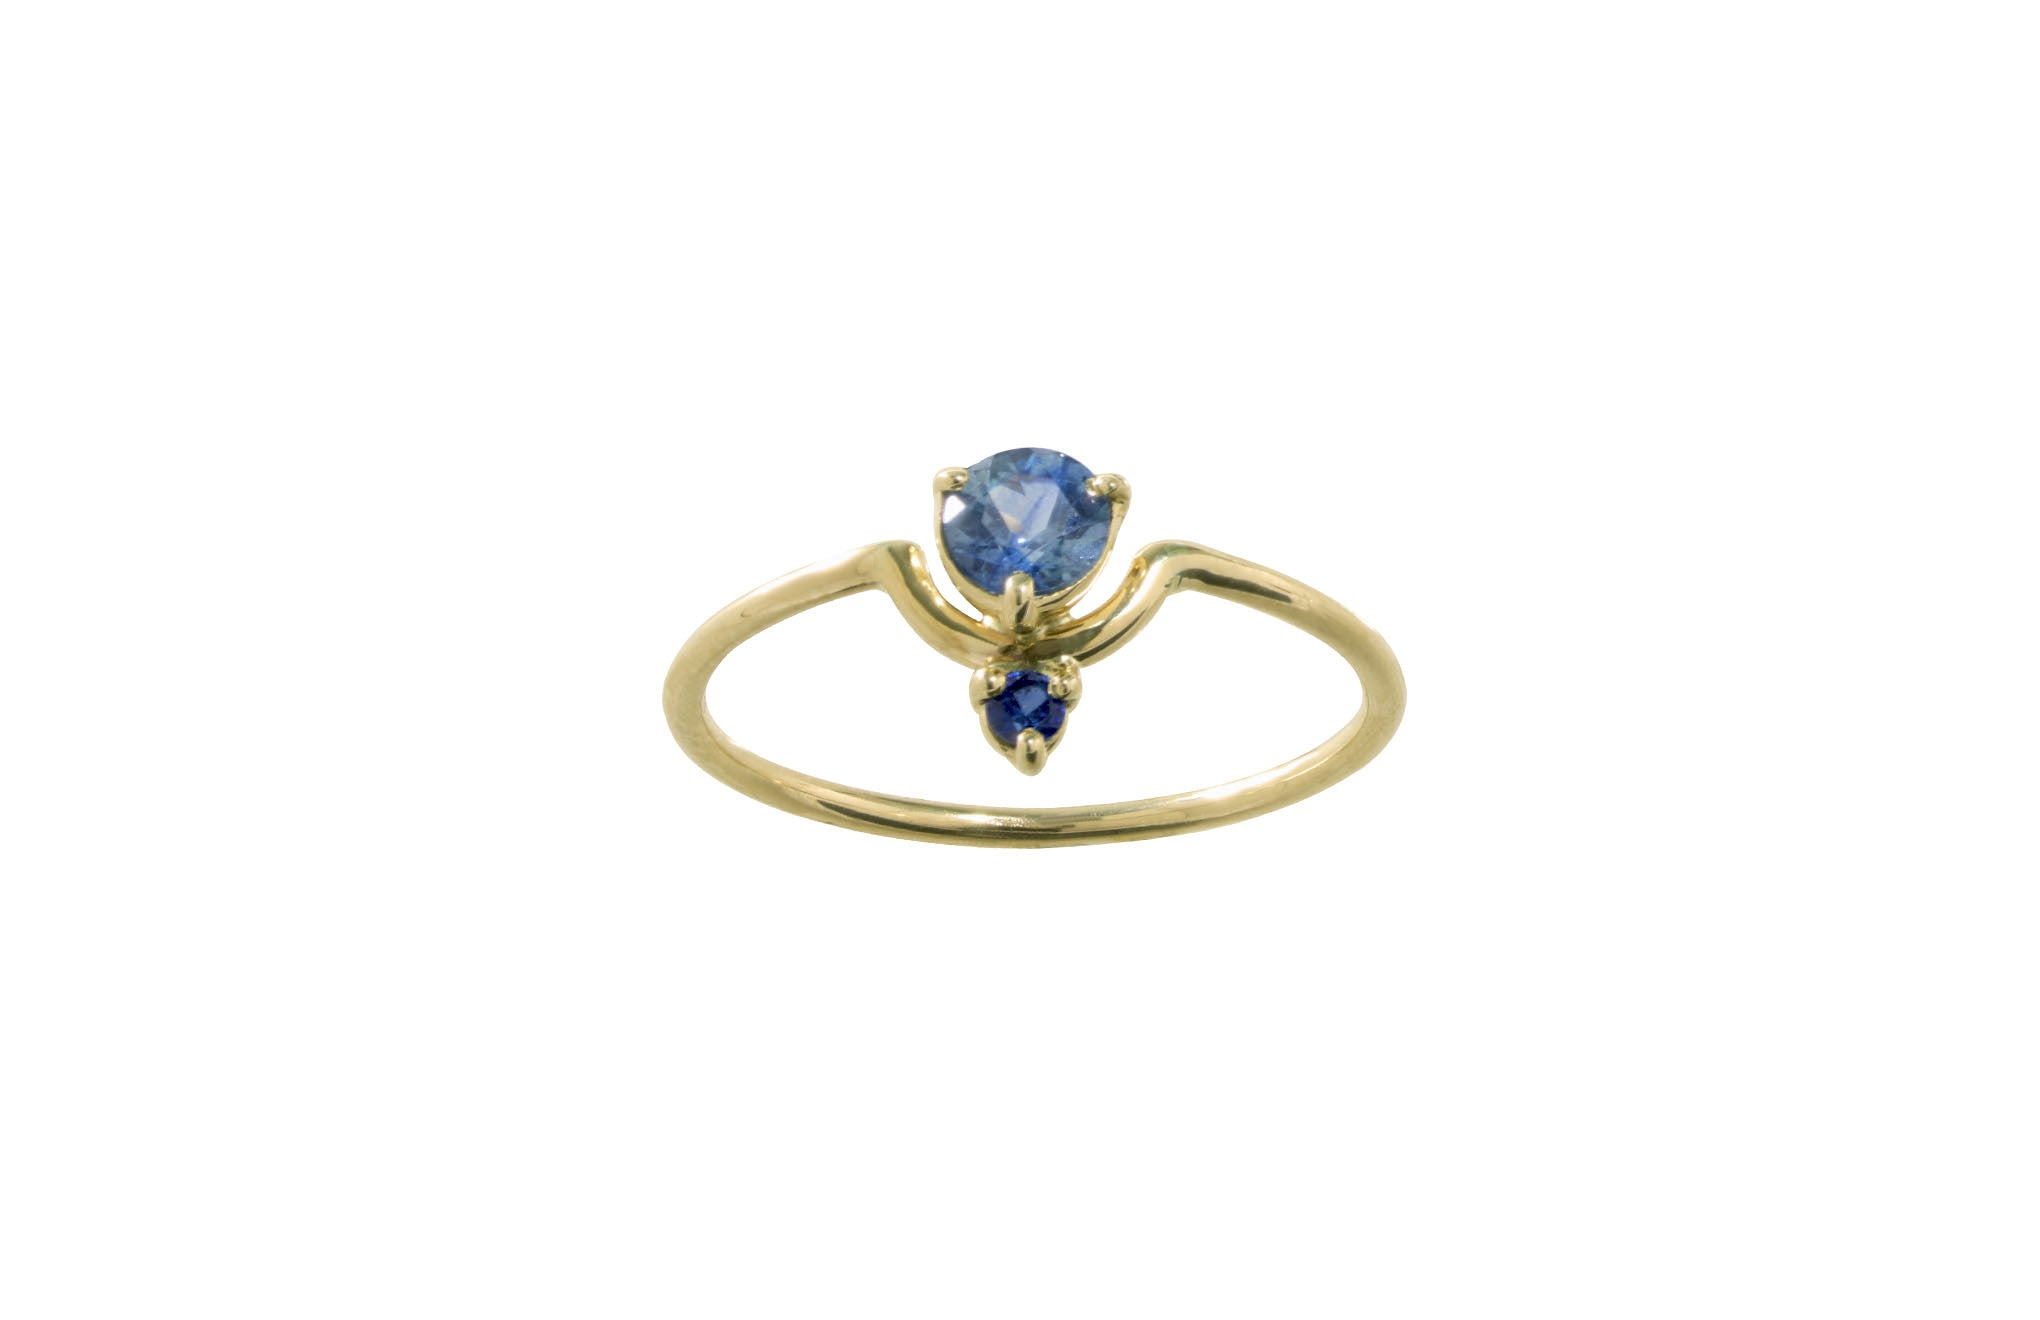 campbell white specialists cut engagement ring sapphire gold light diamond ireland oval blue products eternity